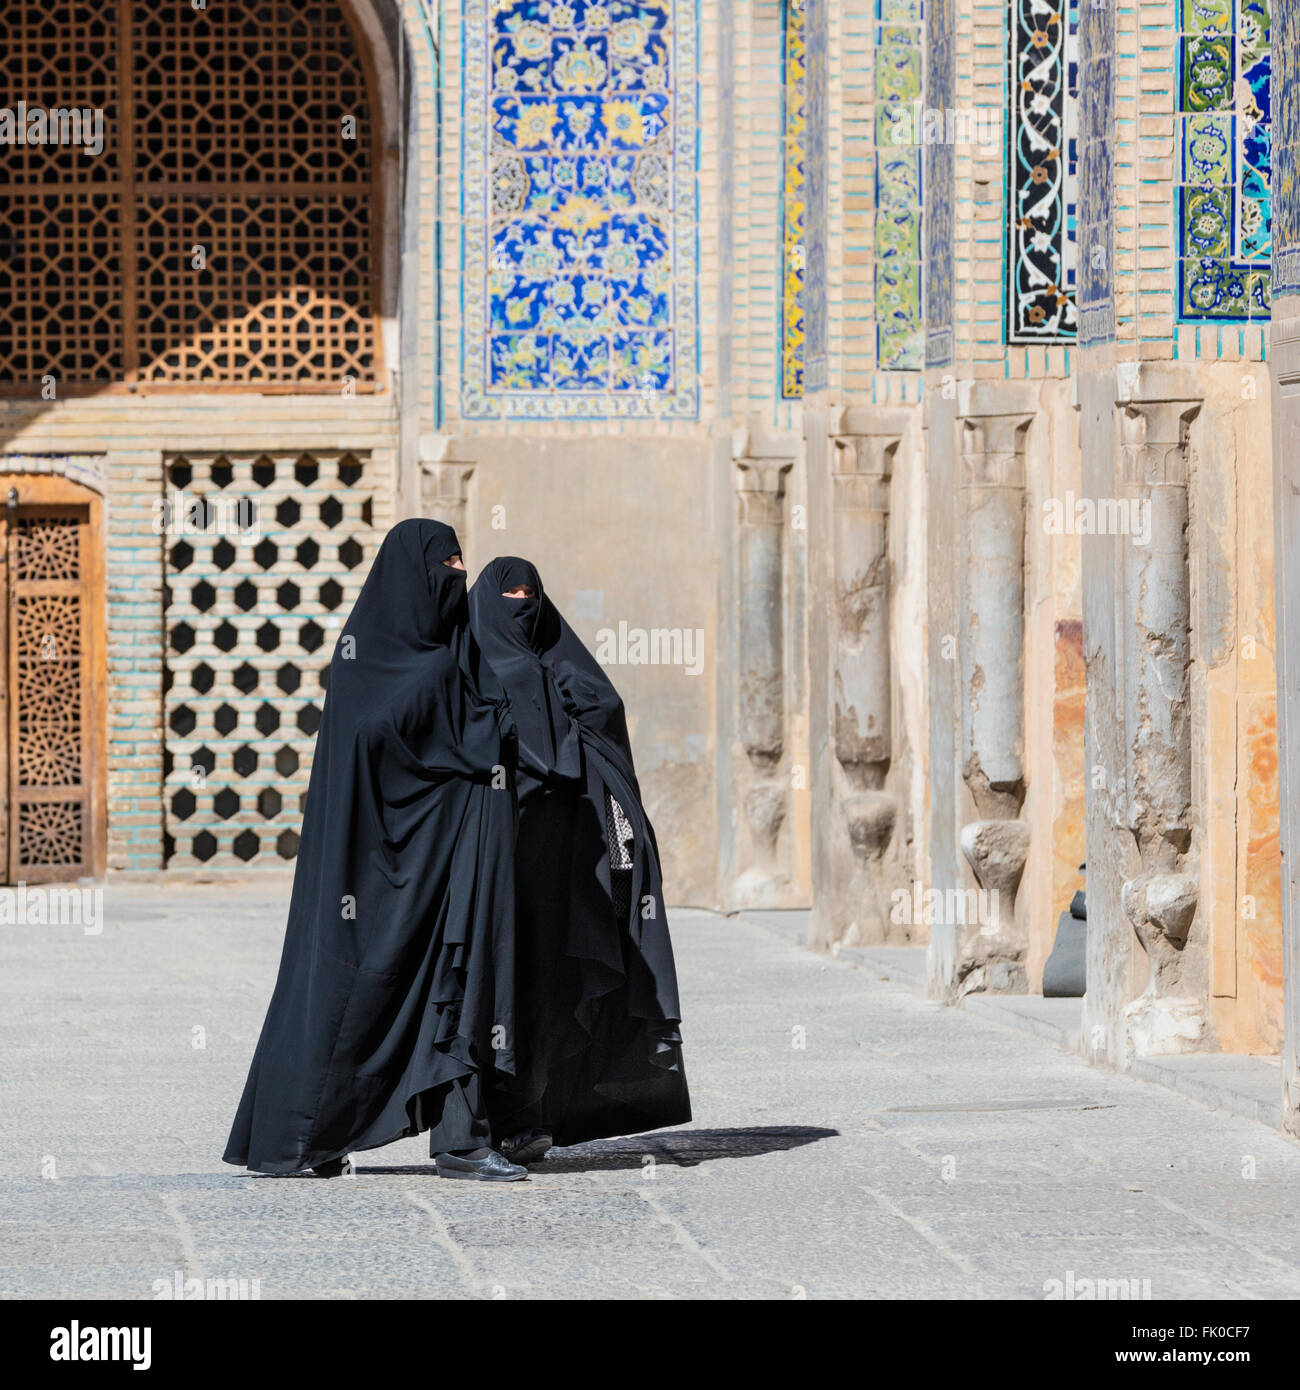 Two women in burkas stand in the courtyard of the Masjed-e Imam (Imam's Mosque) near the Maydan-e Imam Isfahan - Stock Image